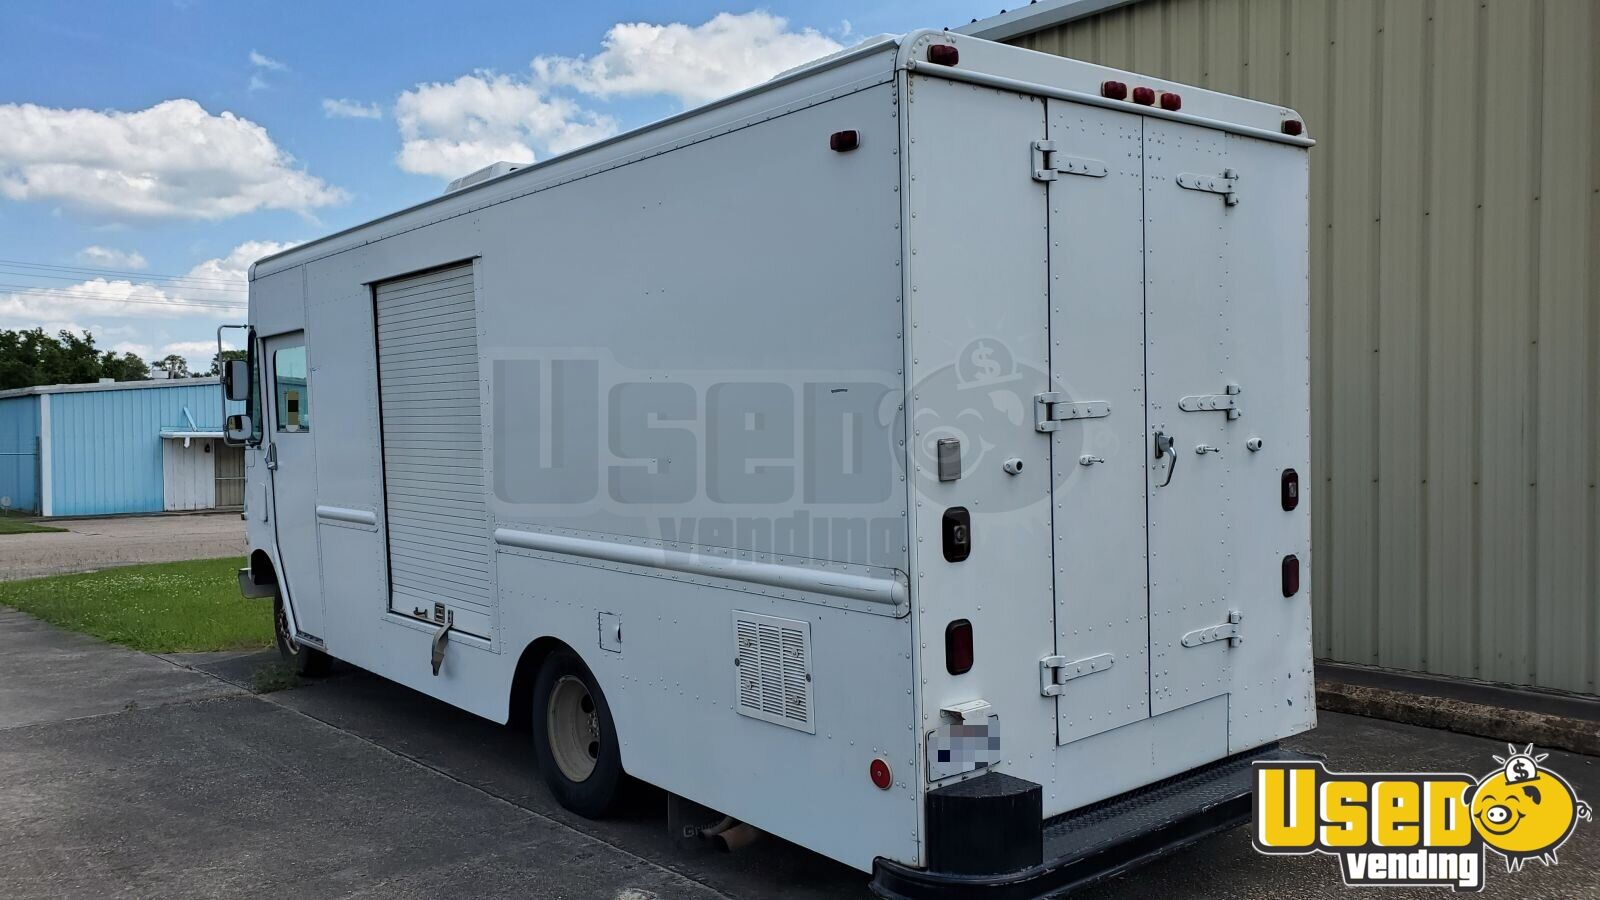 1995 P-30 Step Van Stepvan Air Conditioning Louisiana Gas Engine for Sale - 2